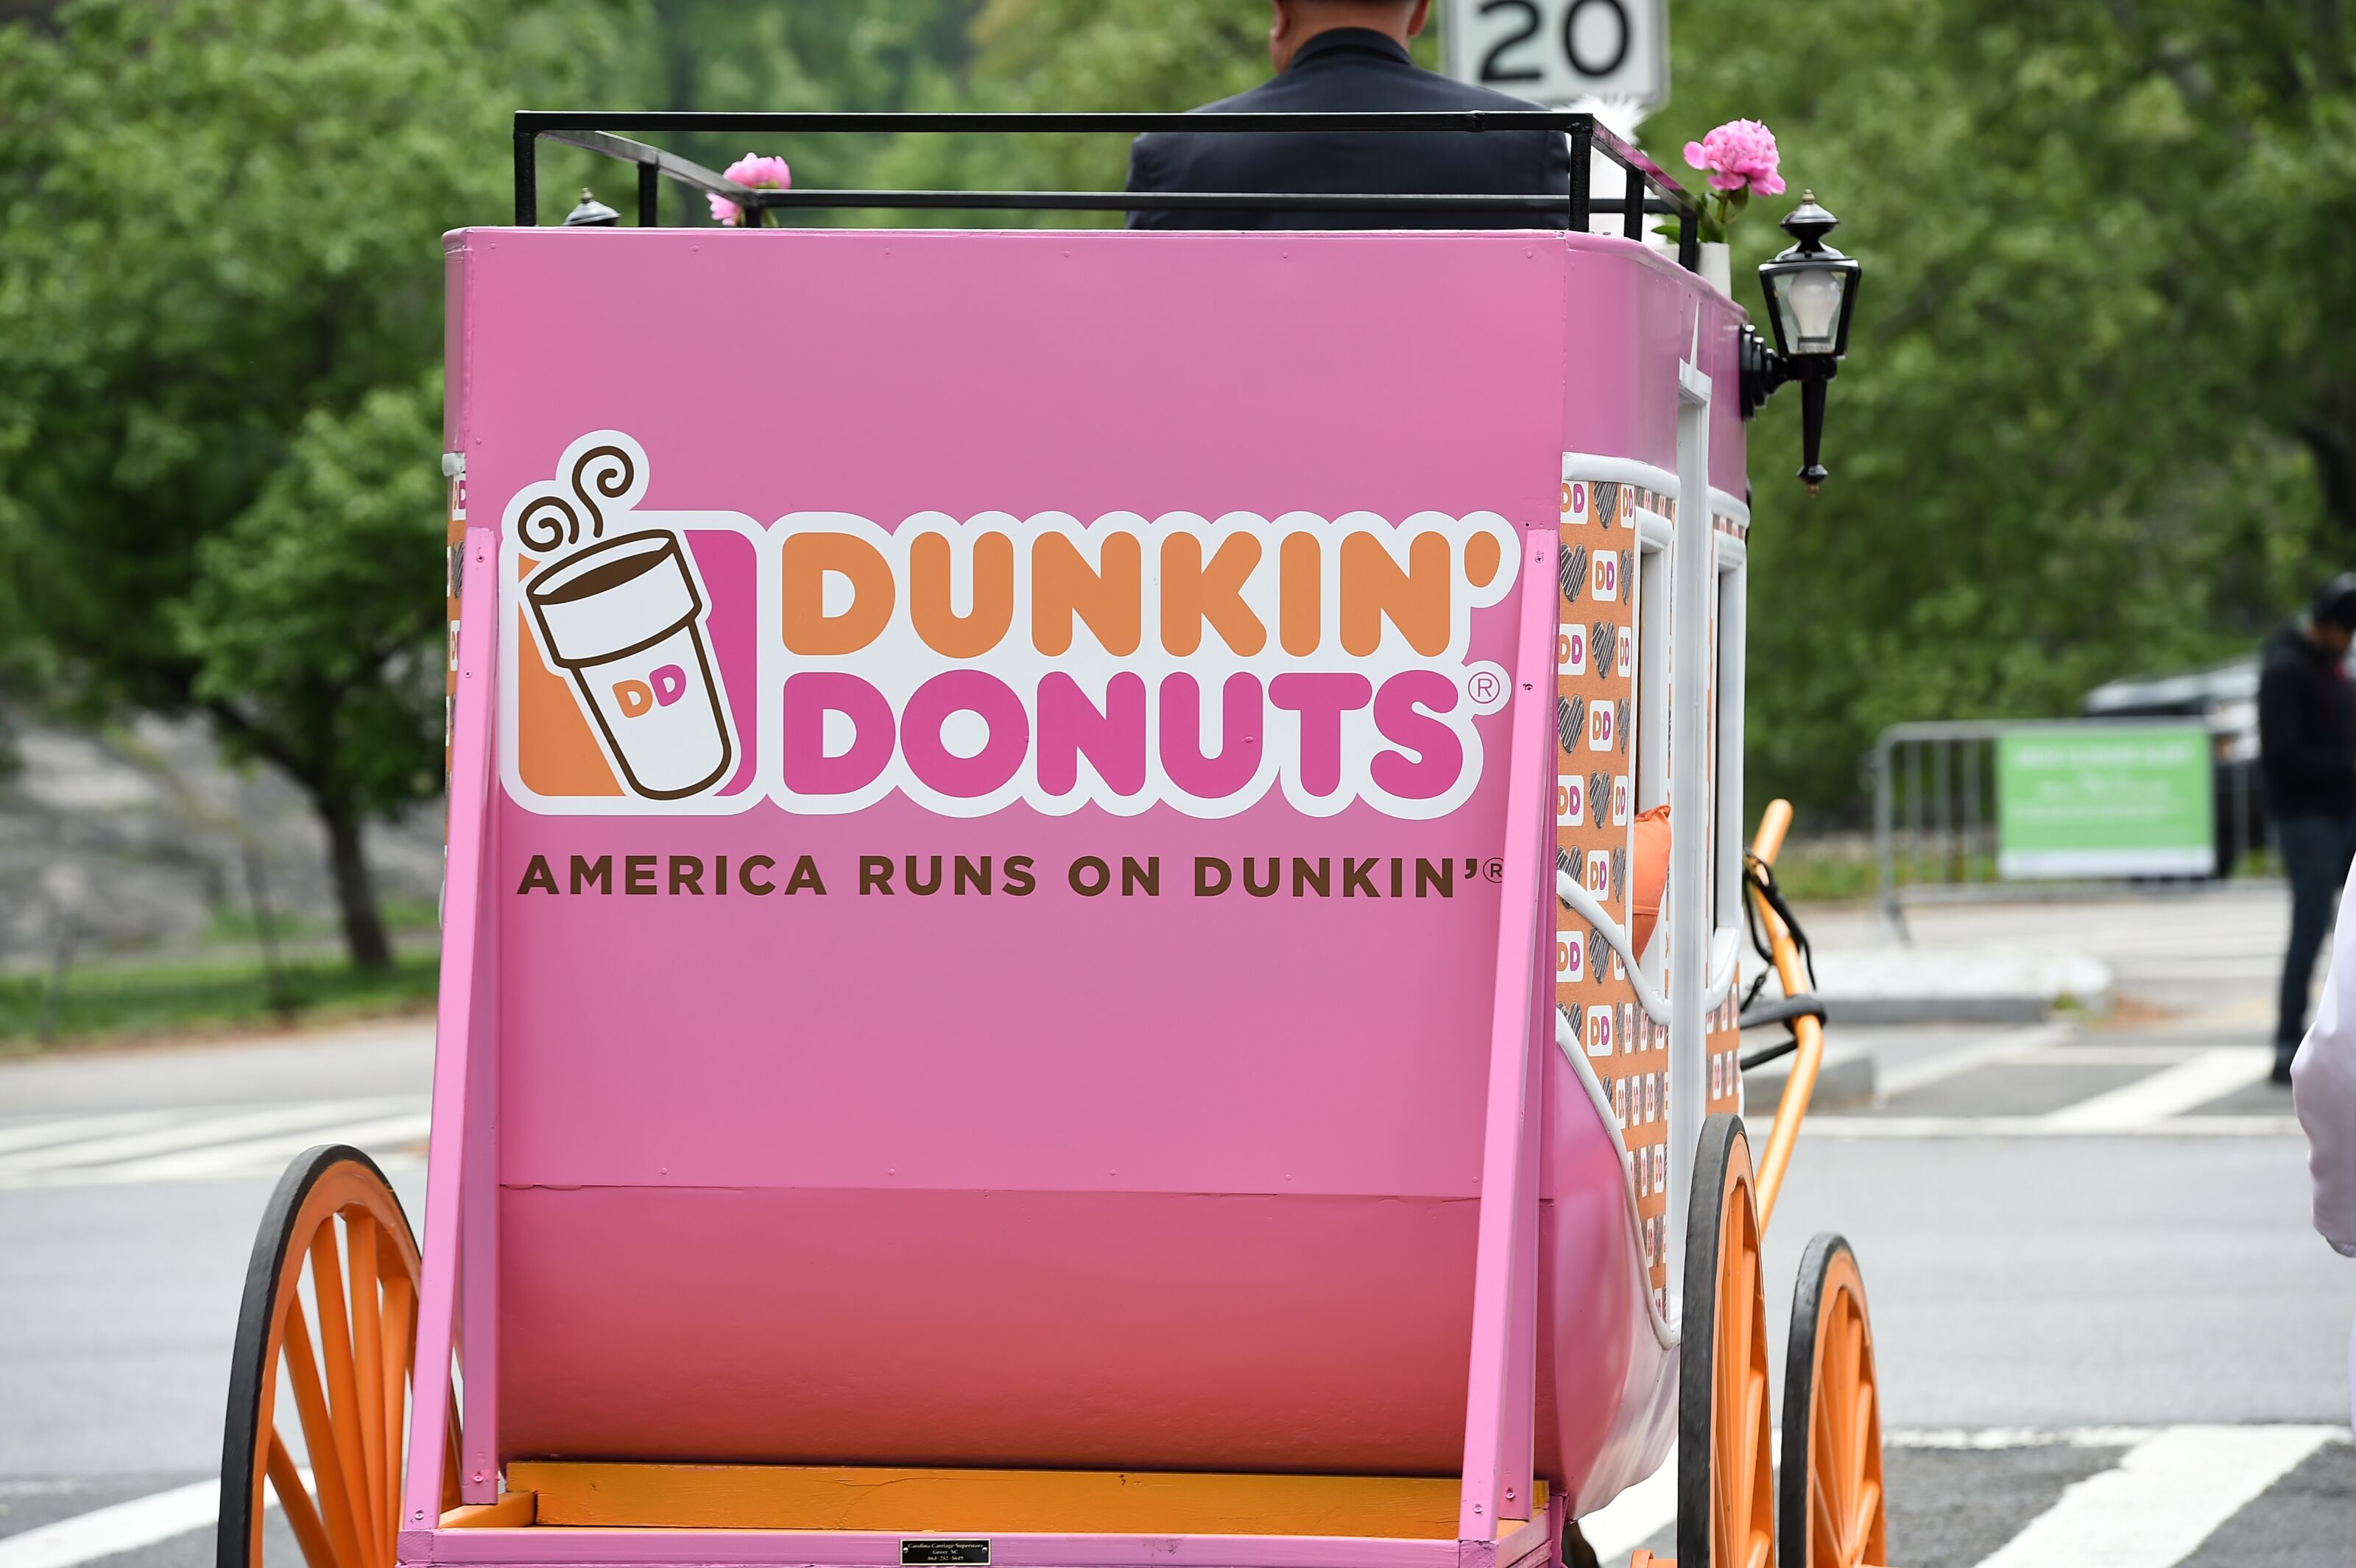 Is Dunkin' open on Memorial Day 2019?